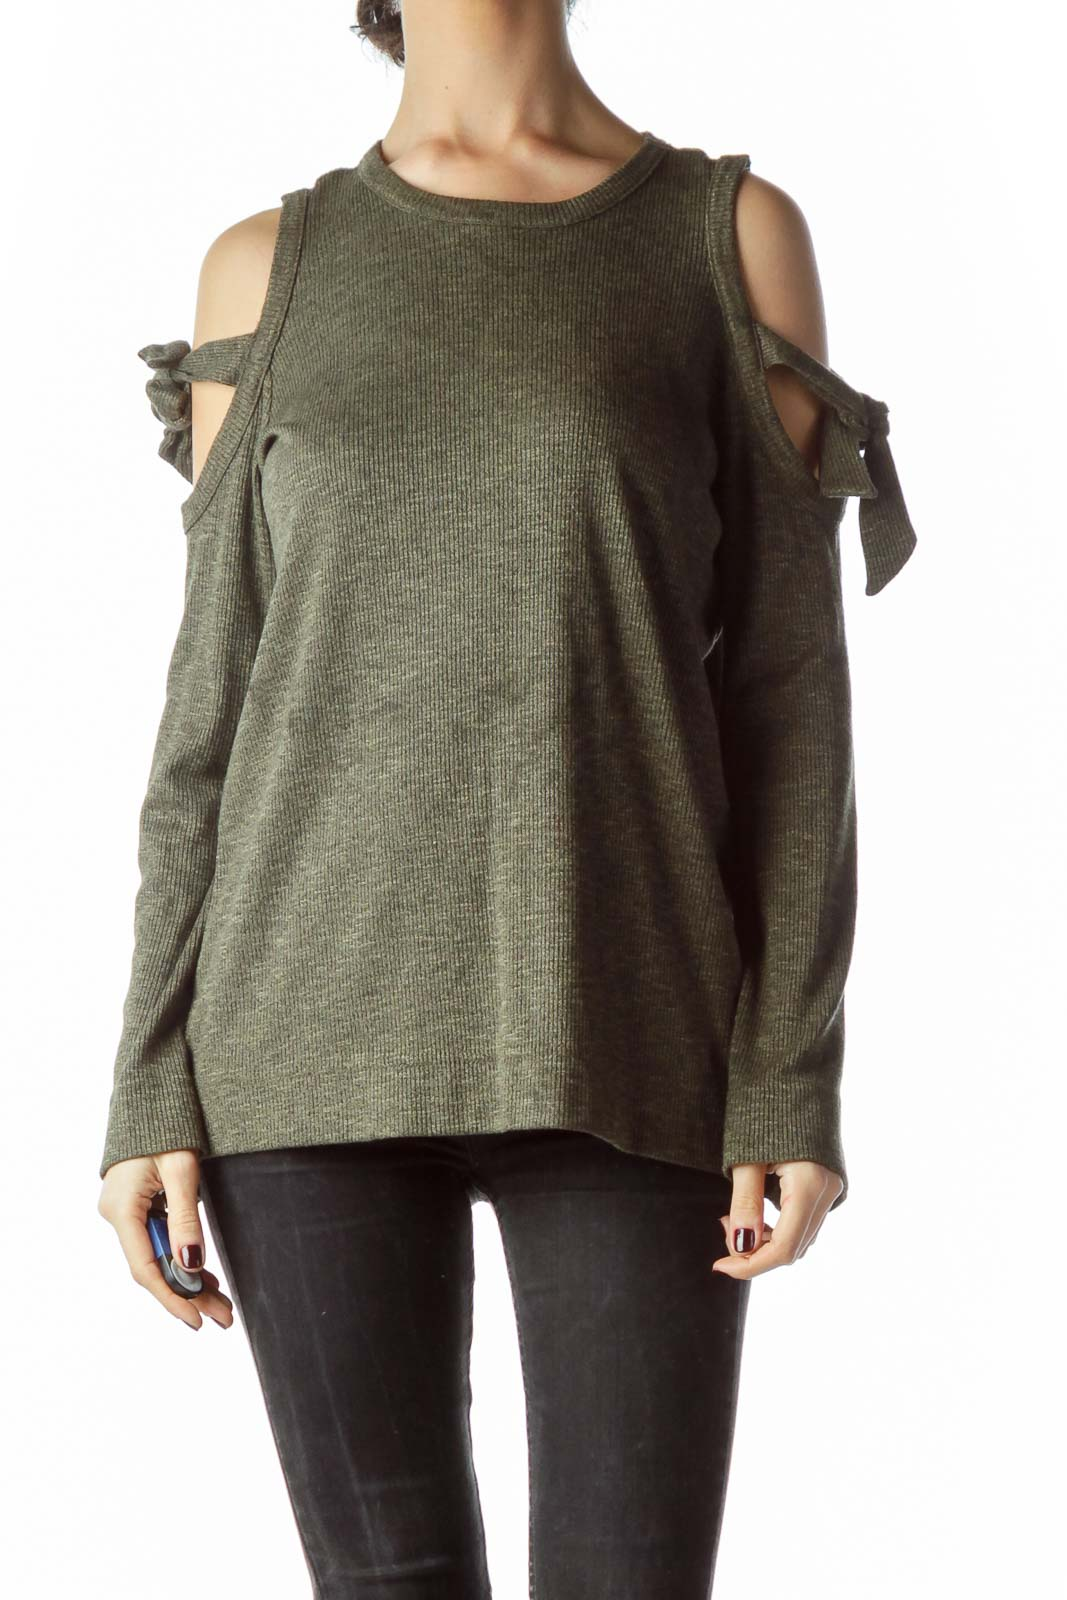 Green Cold Shoulder Shoulder Ties Knit Top